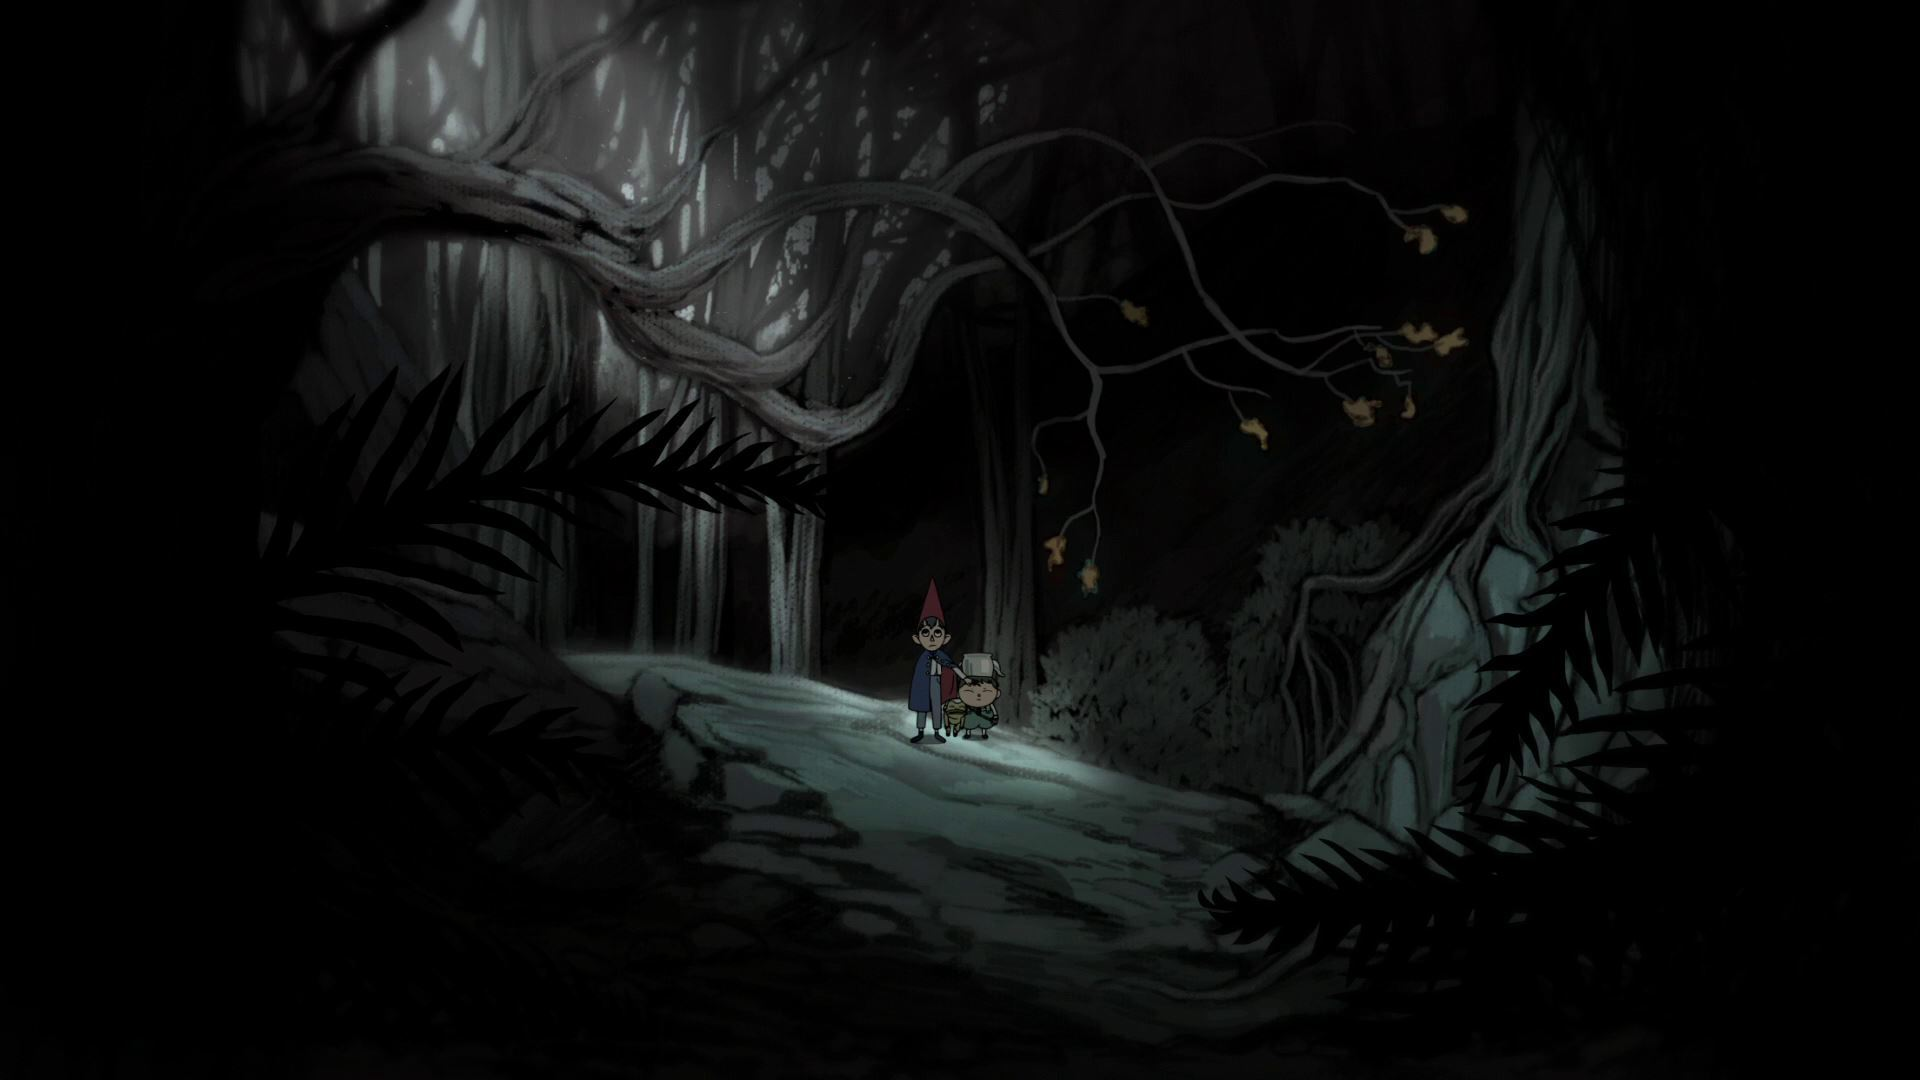 Download Wallpaper Forest Over The Garden Wall On The Other Side